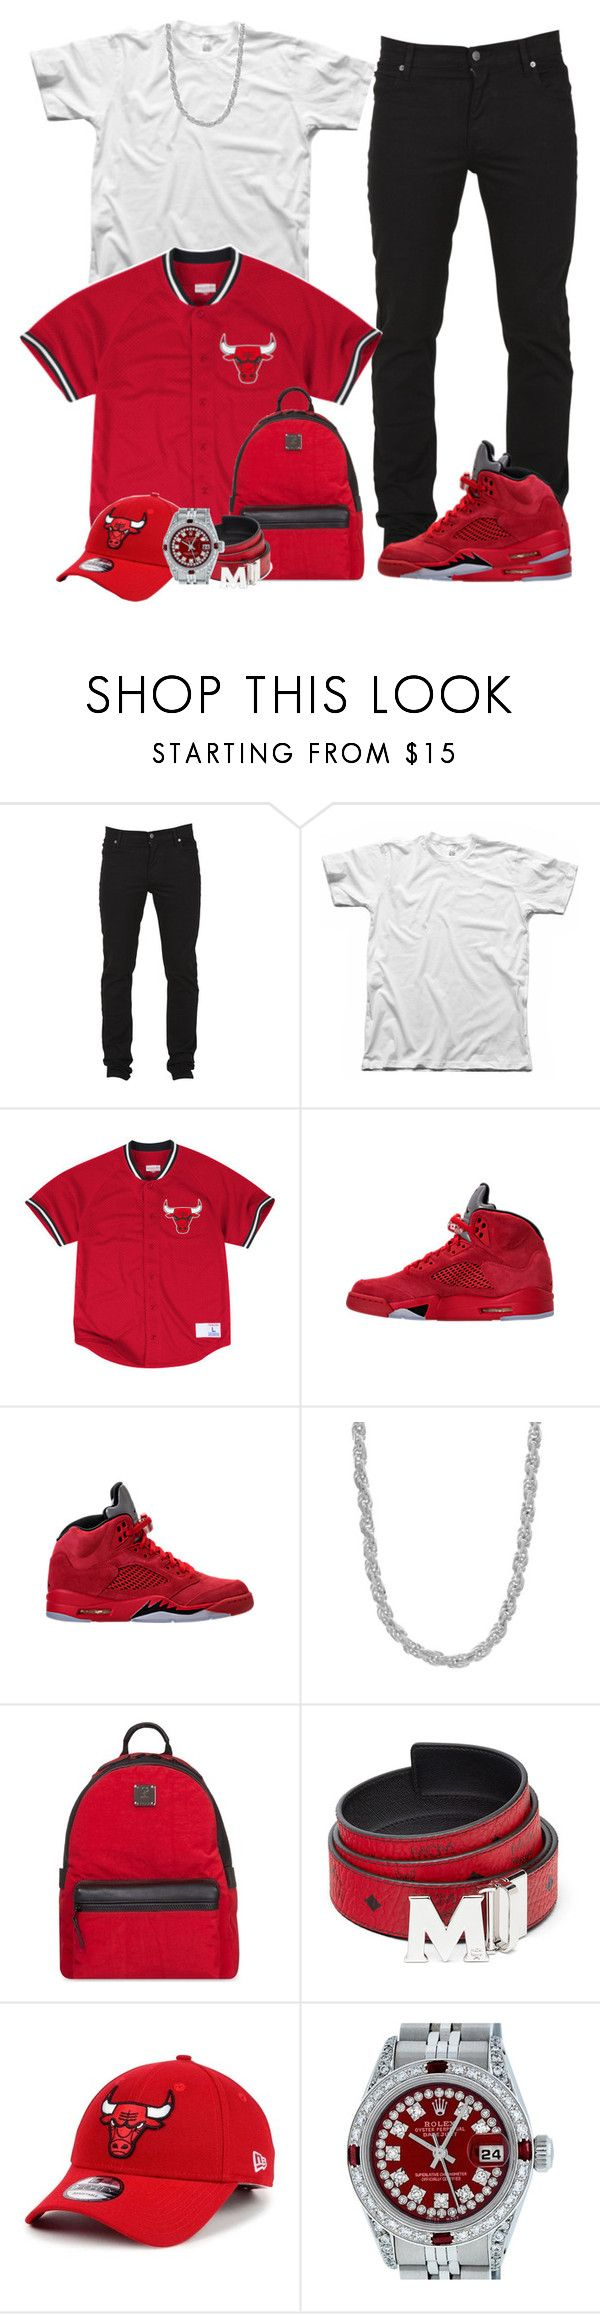 """Kendrick Lamar, Rihanna x Loyalty"" by vi-demigliore ❤ liked on Polyvore featuring Cheap Monday, Mitchell & Ness, Sterling Essentials, MCM, New Era and Rolex"